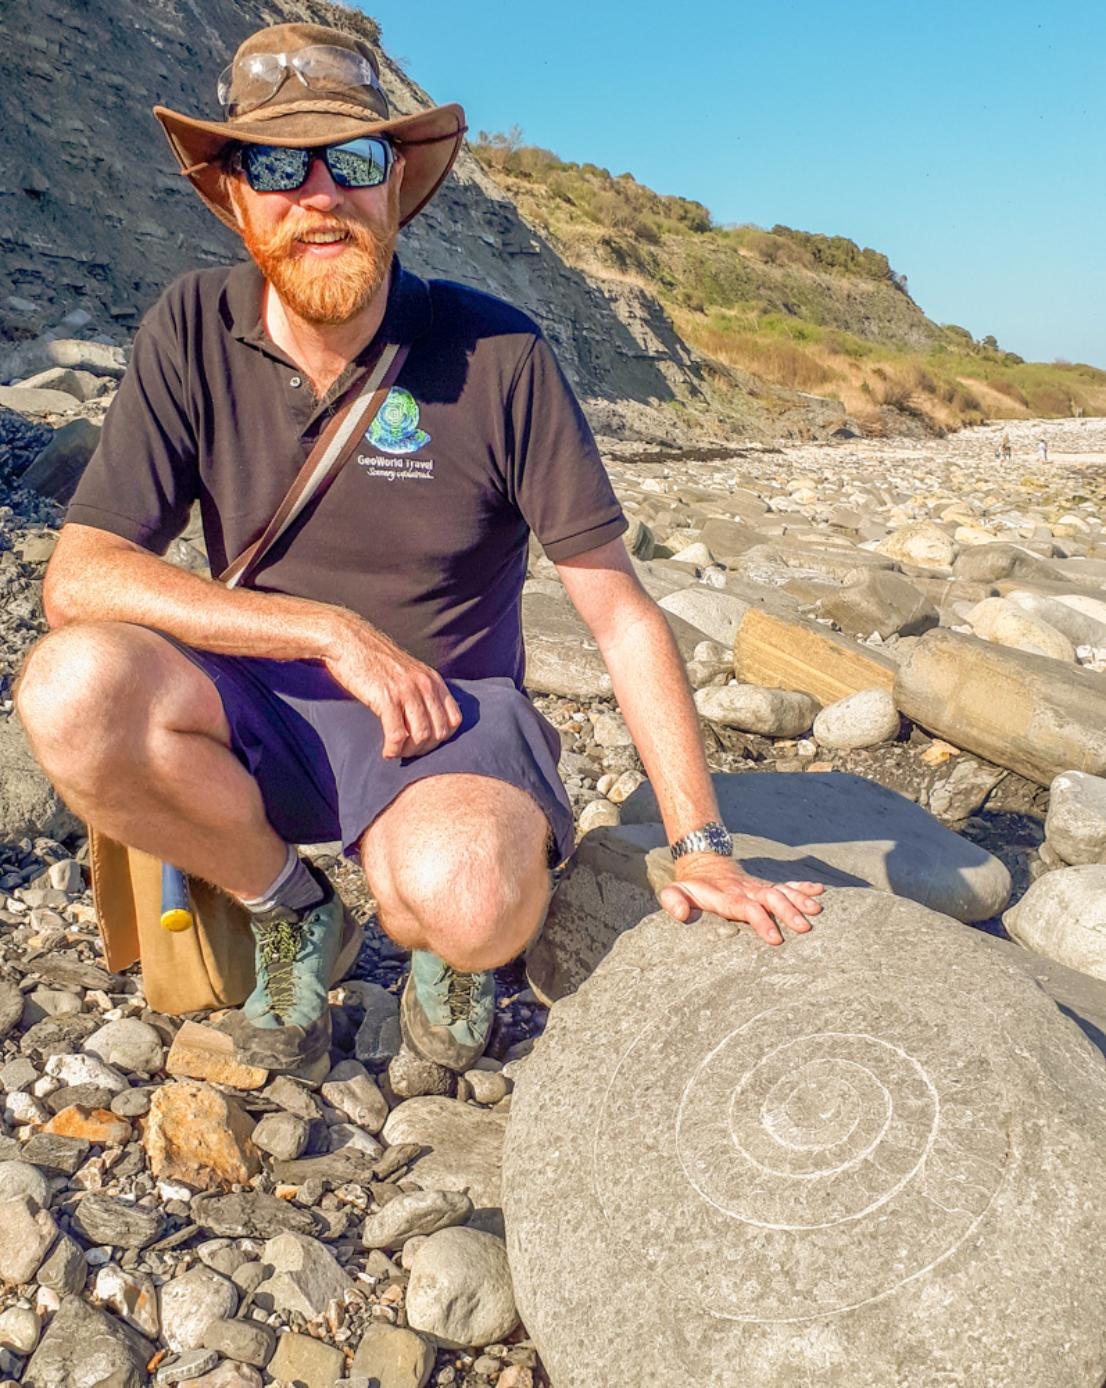 A photograph of James Cresswell, Director of GeoWorld Travel kneeling next to an ammonite in Lyme Regis on the Jurassic Coast